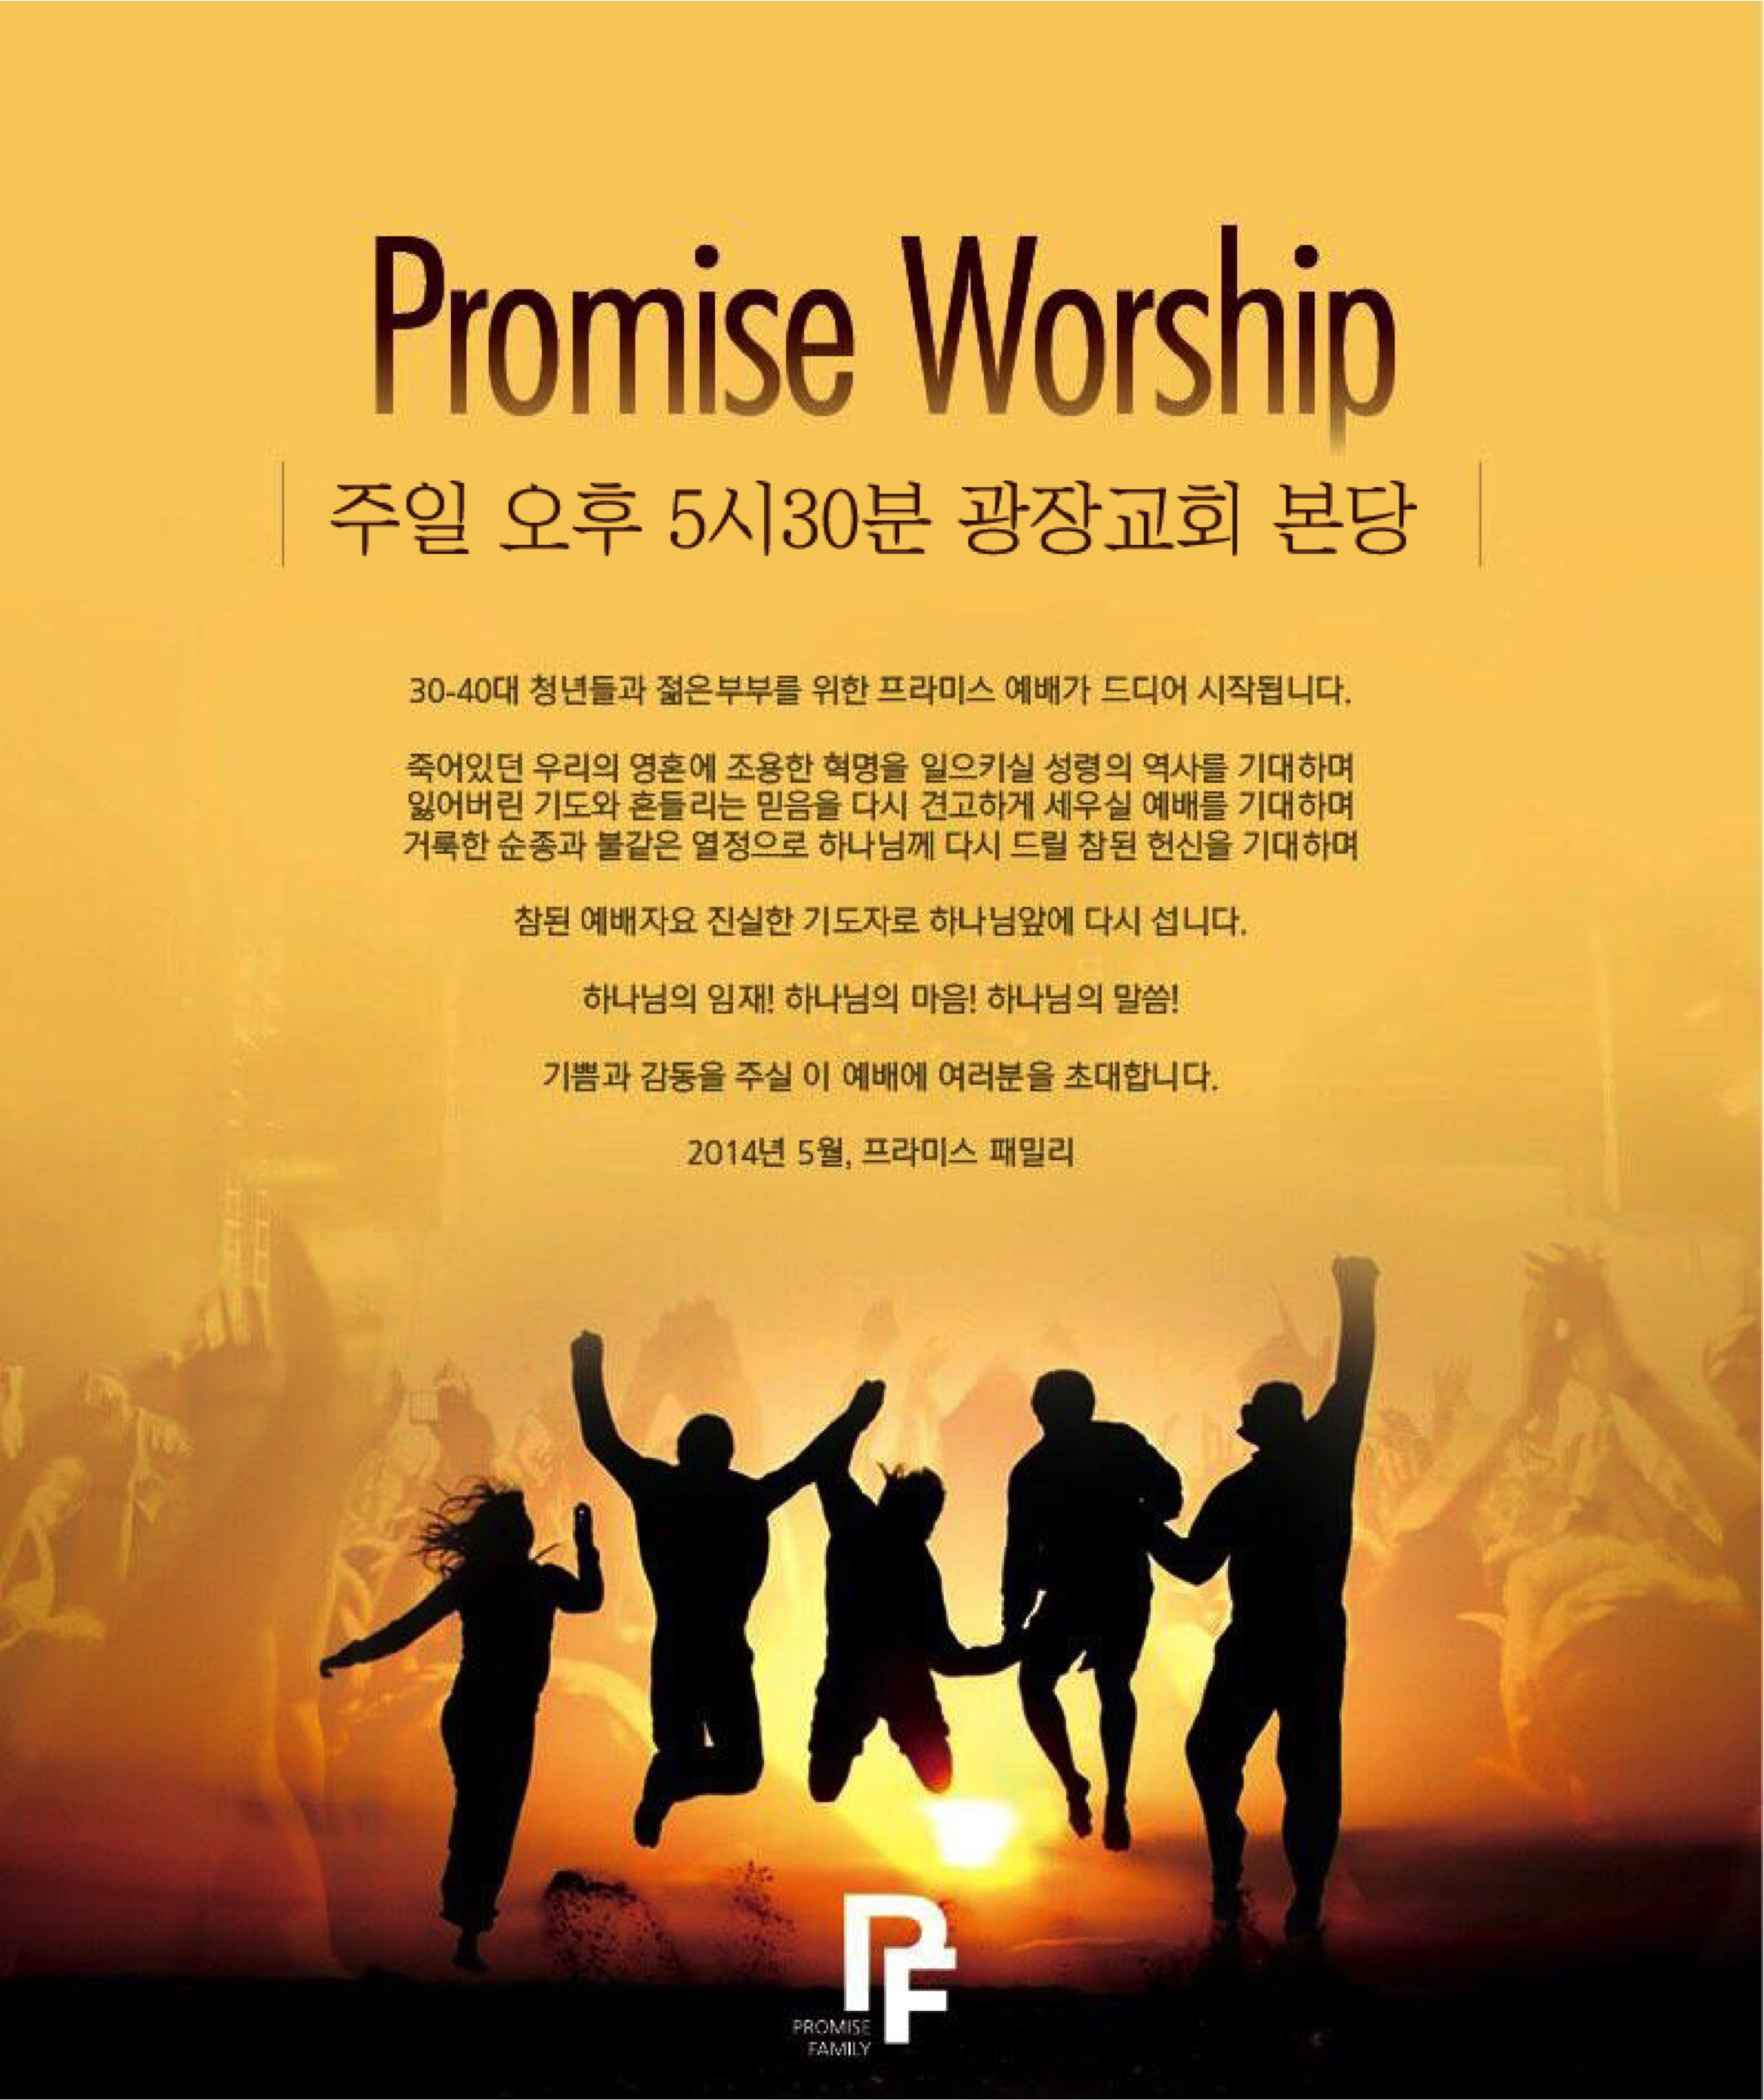 PromiseWorship